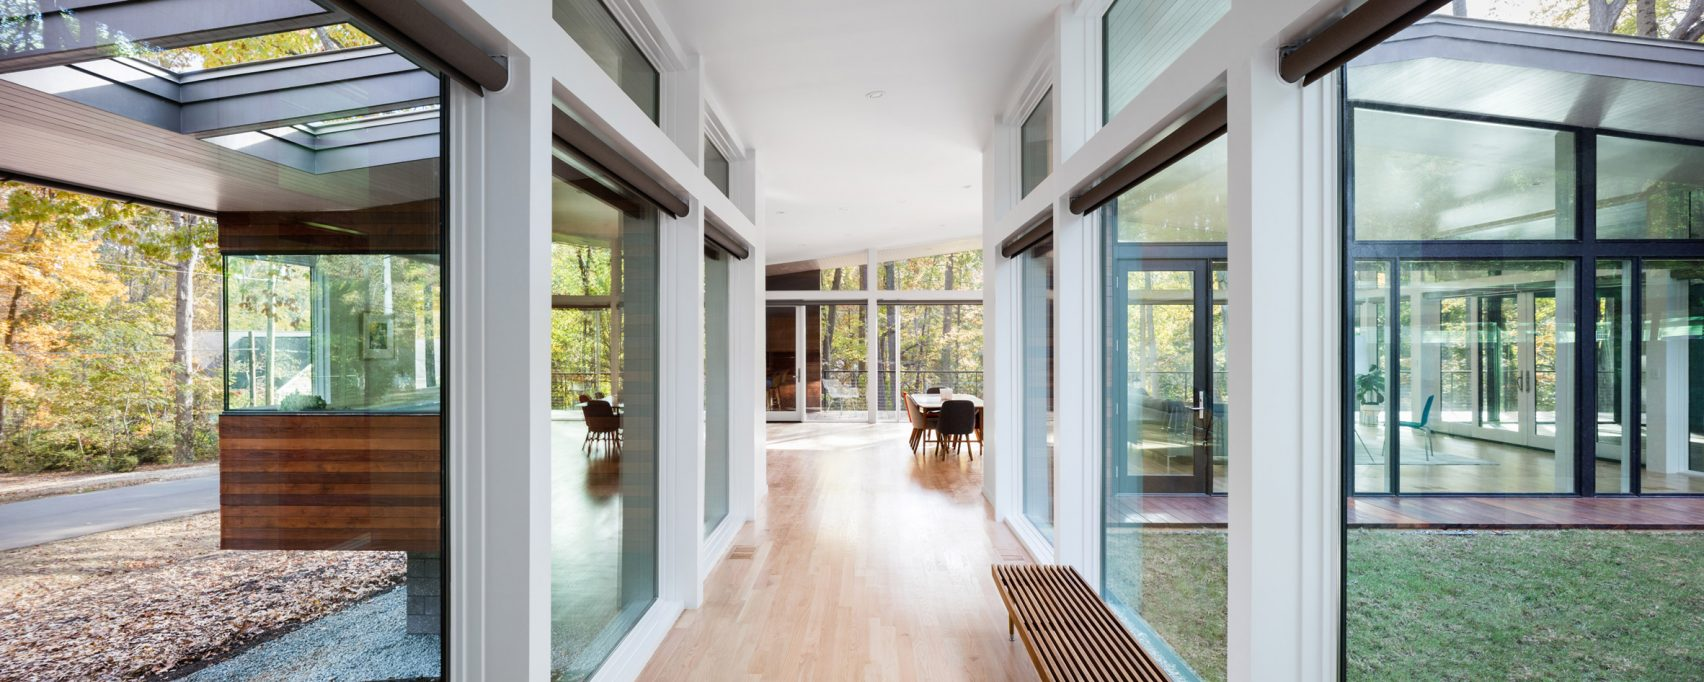 This House in North Carolina was Inspired by Mid-Century Architecture_4 mid-century architecture This House in North Carolina was Inspired by Mid-Century Architecture This House in North Carolina was Inspired by Mid Century Architecture 4